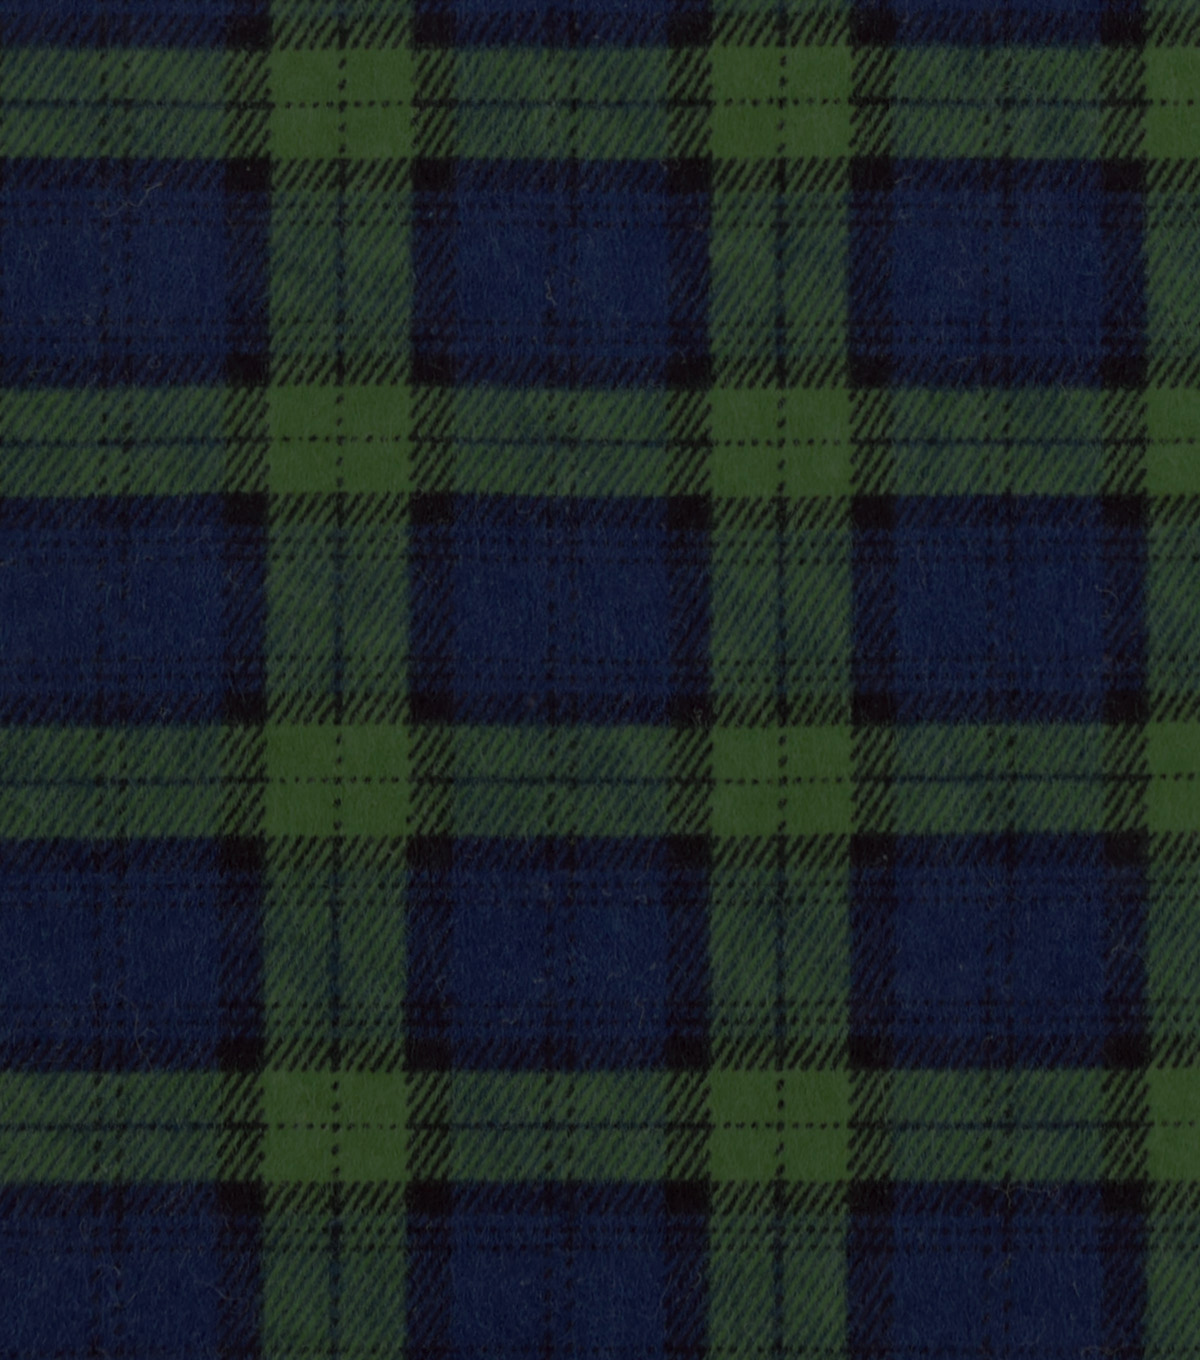 747c237843667 Flannel Fabric - Shop Flannel Fabric by the Yard